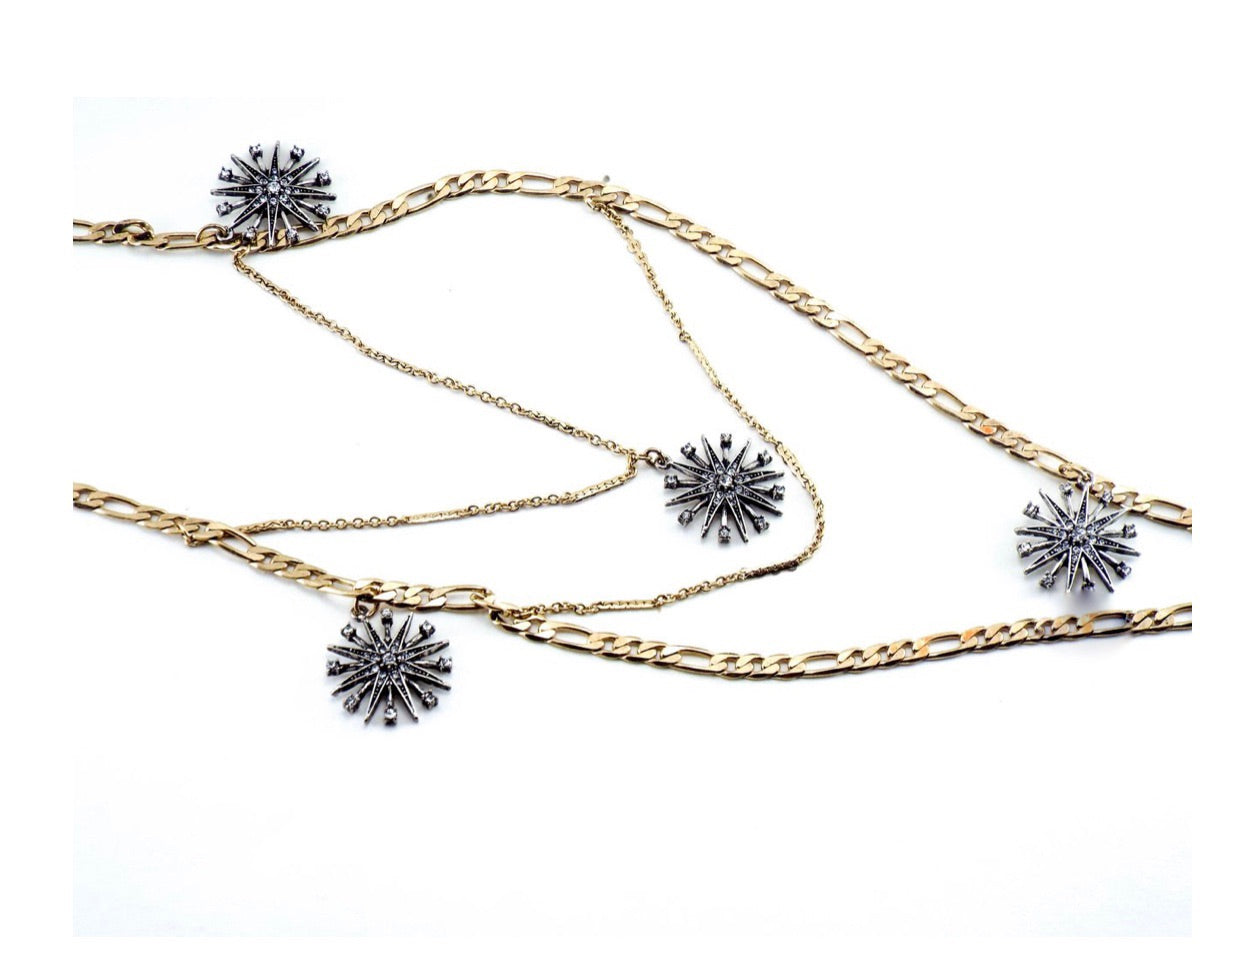 FIVE SUNS necklace